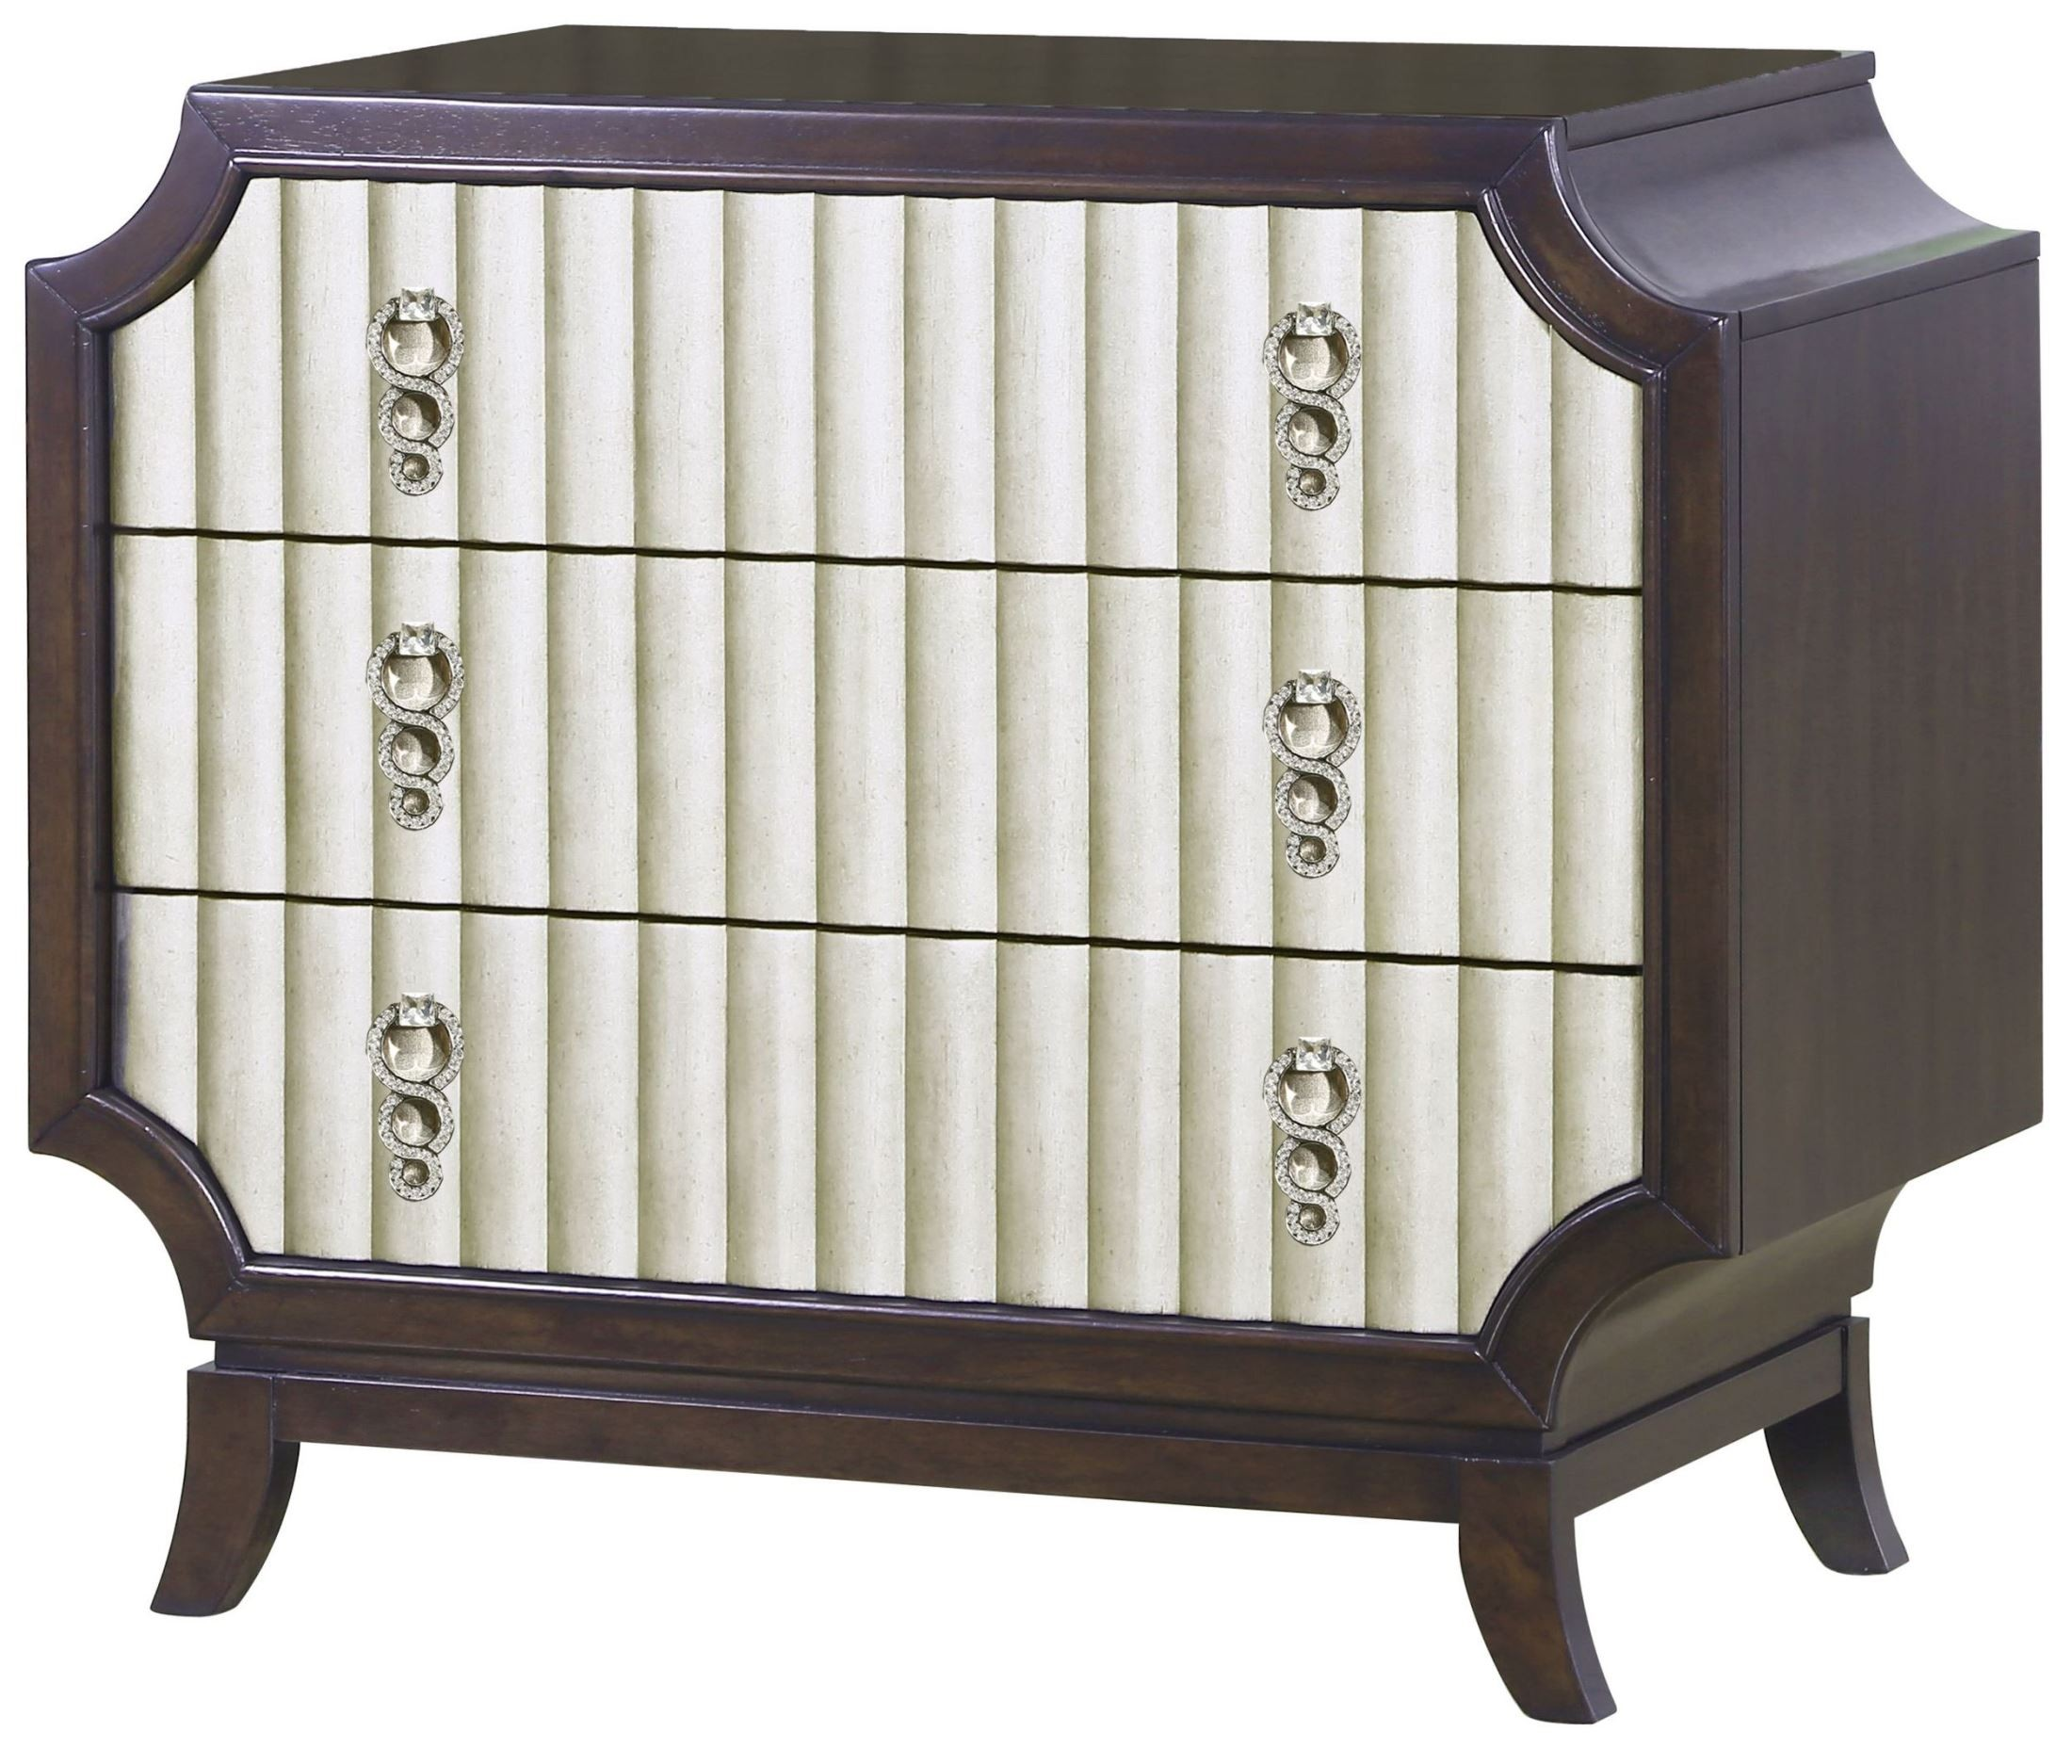 Gramercy Sable Wood Accent Chest From Magnussen Home B3564 32 Coleman Furniture